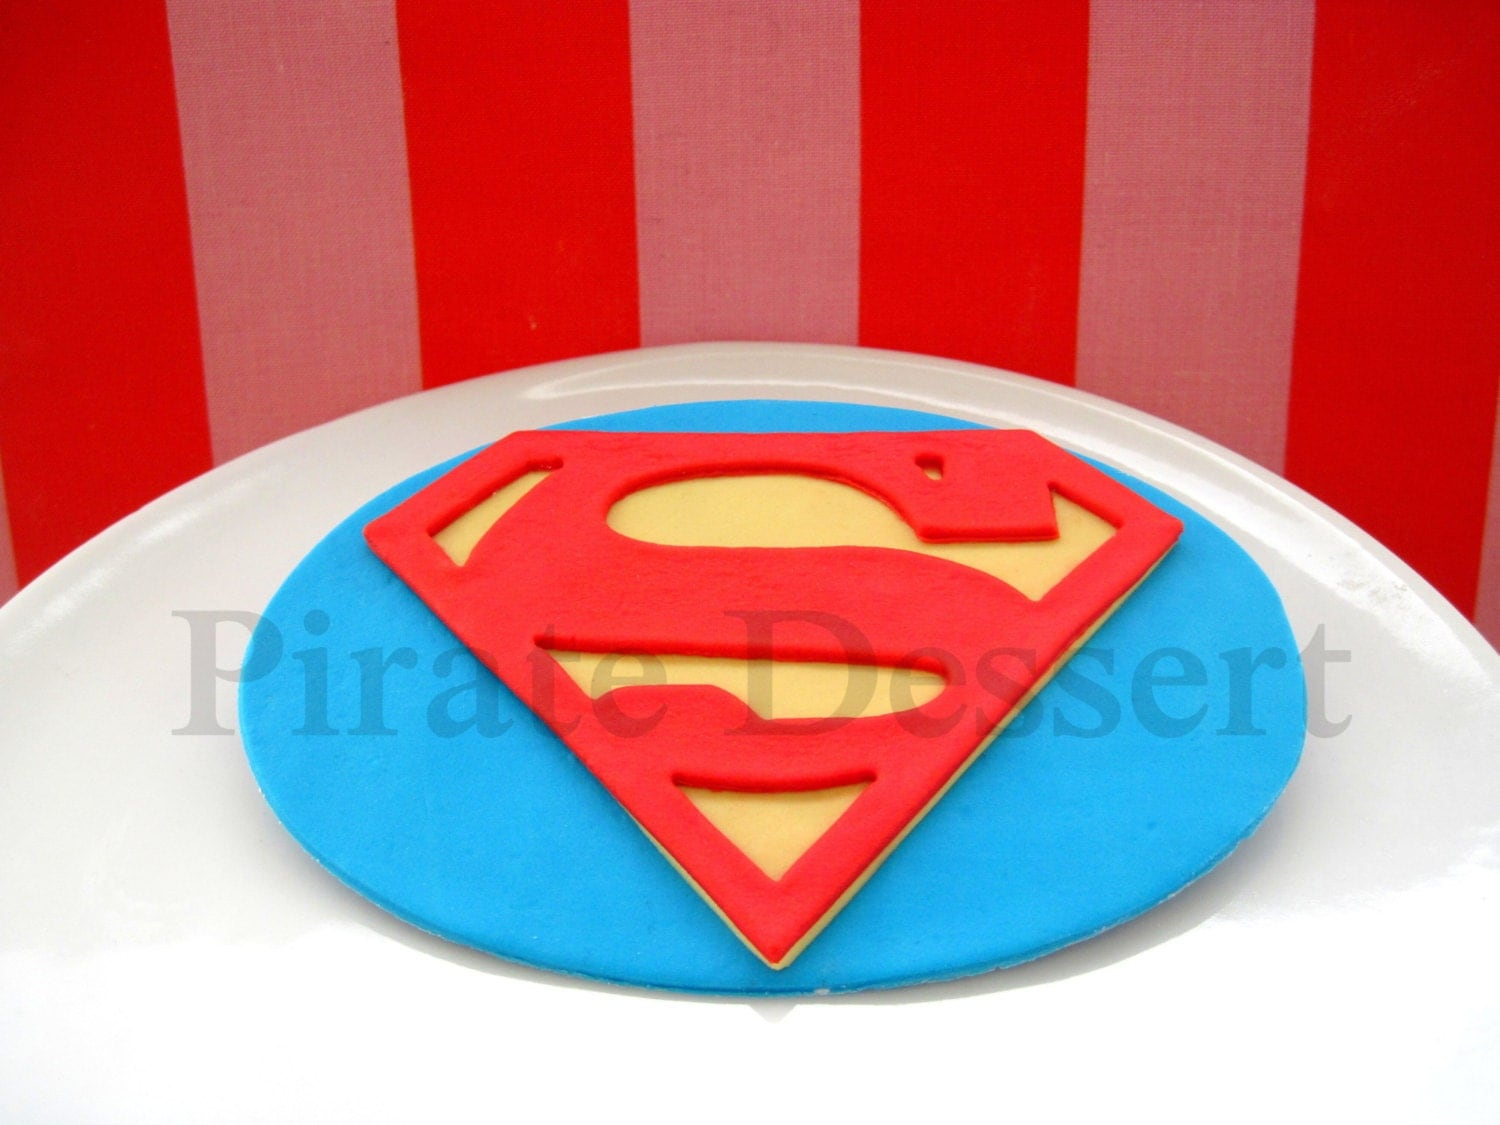 superman logo template for cake - edible cake topper superman logo man of steel justice